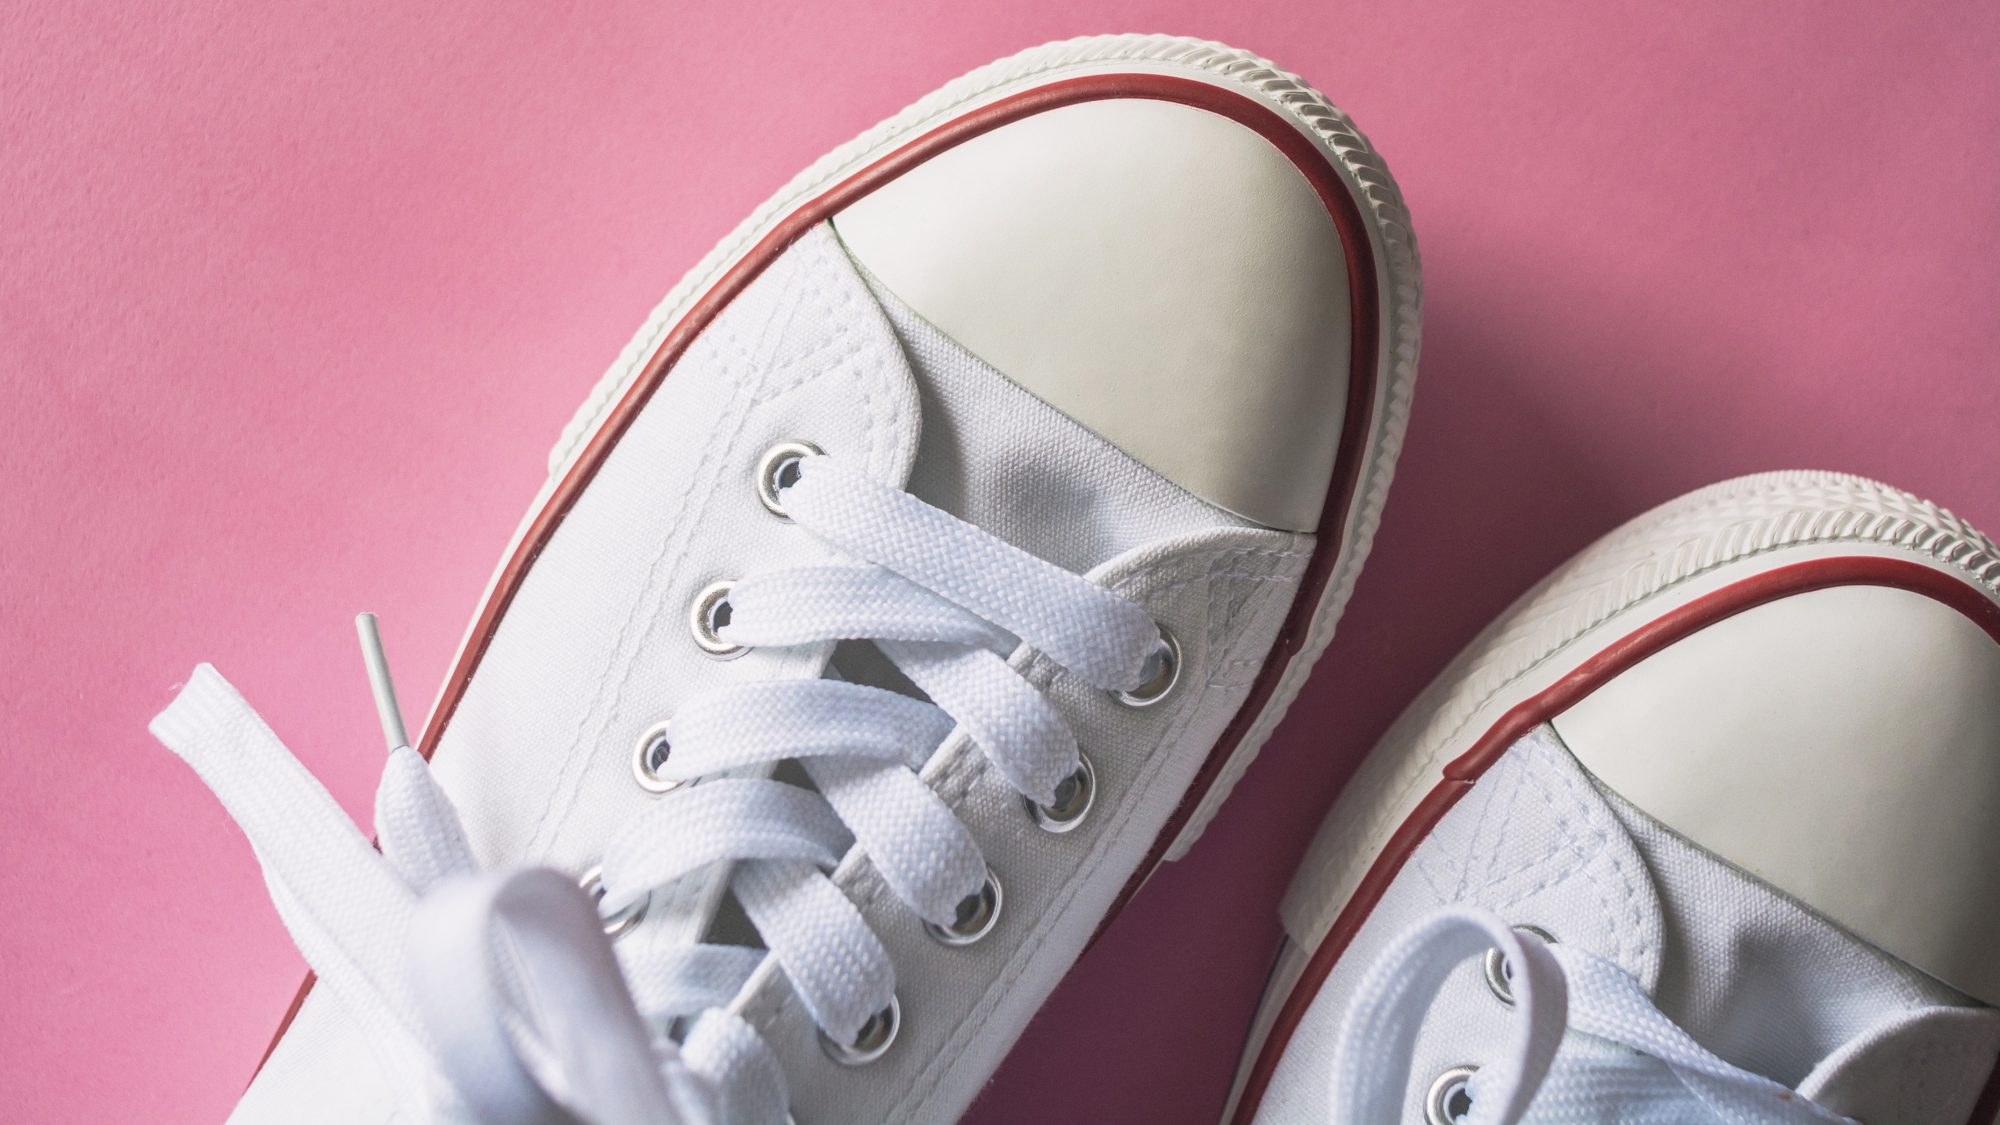 How to clean white shoes: easy cleaning guide and steps for white shoes (canvas white shoes)